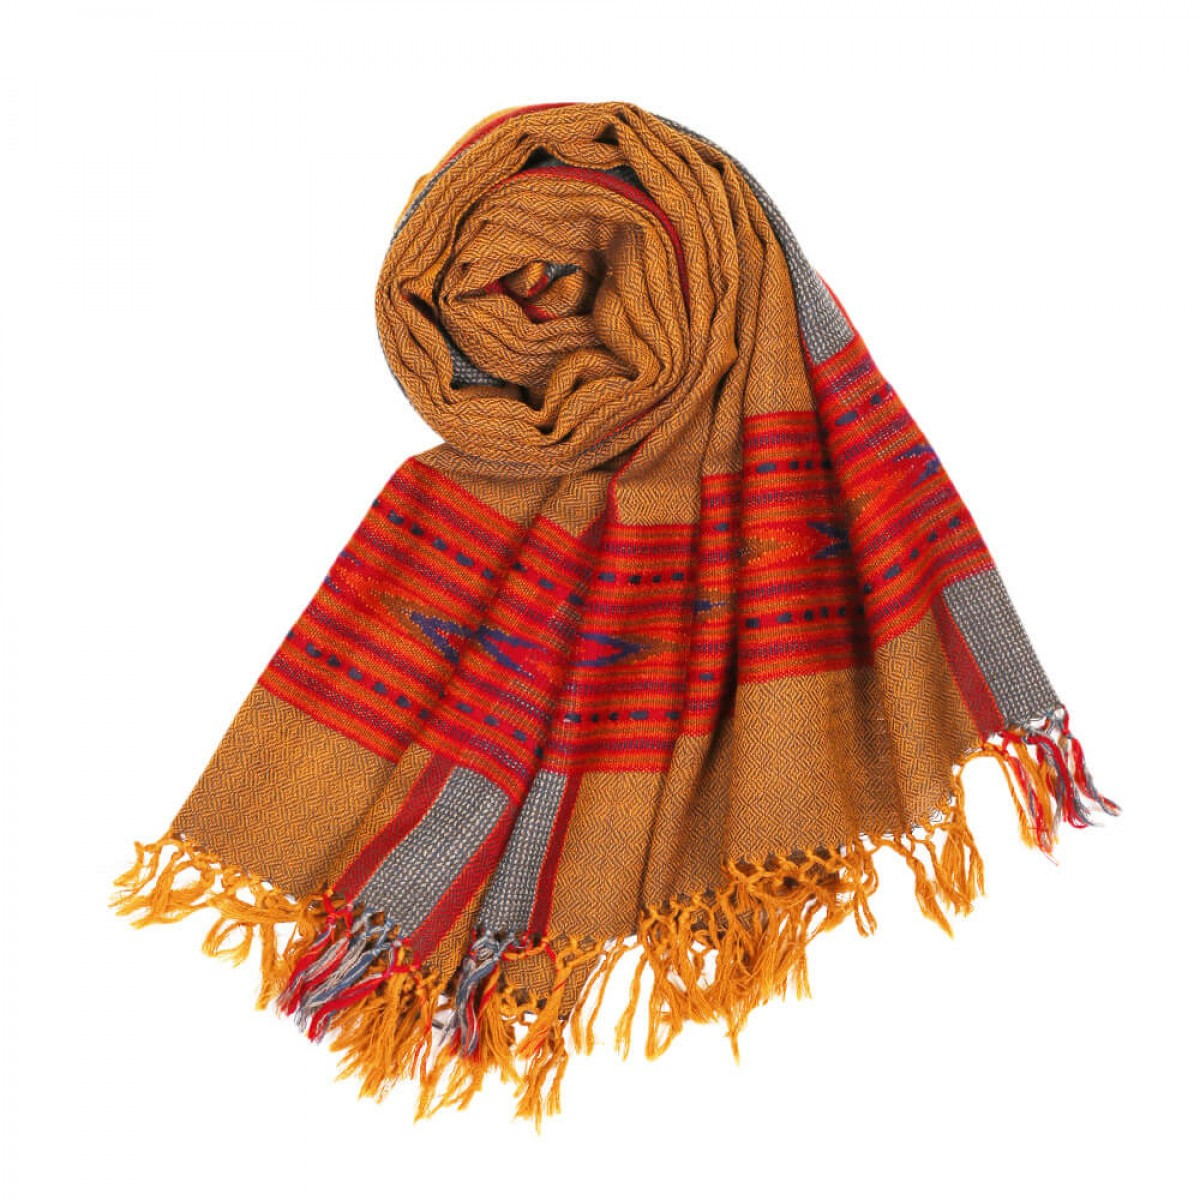 Himalayan Vibes Woolen Scarf - Gold & Red